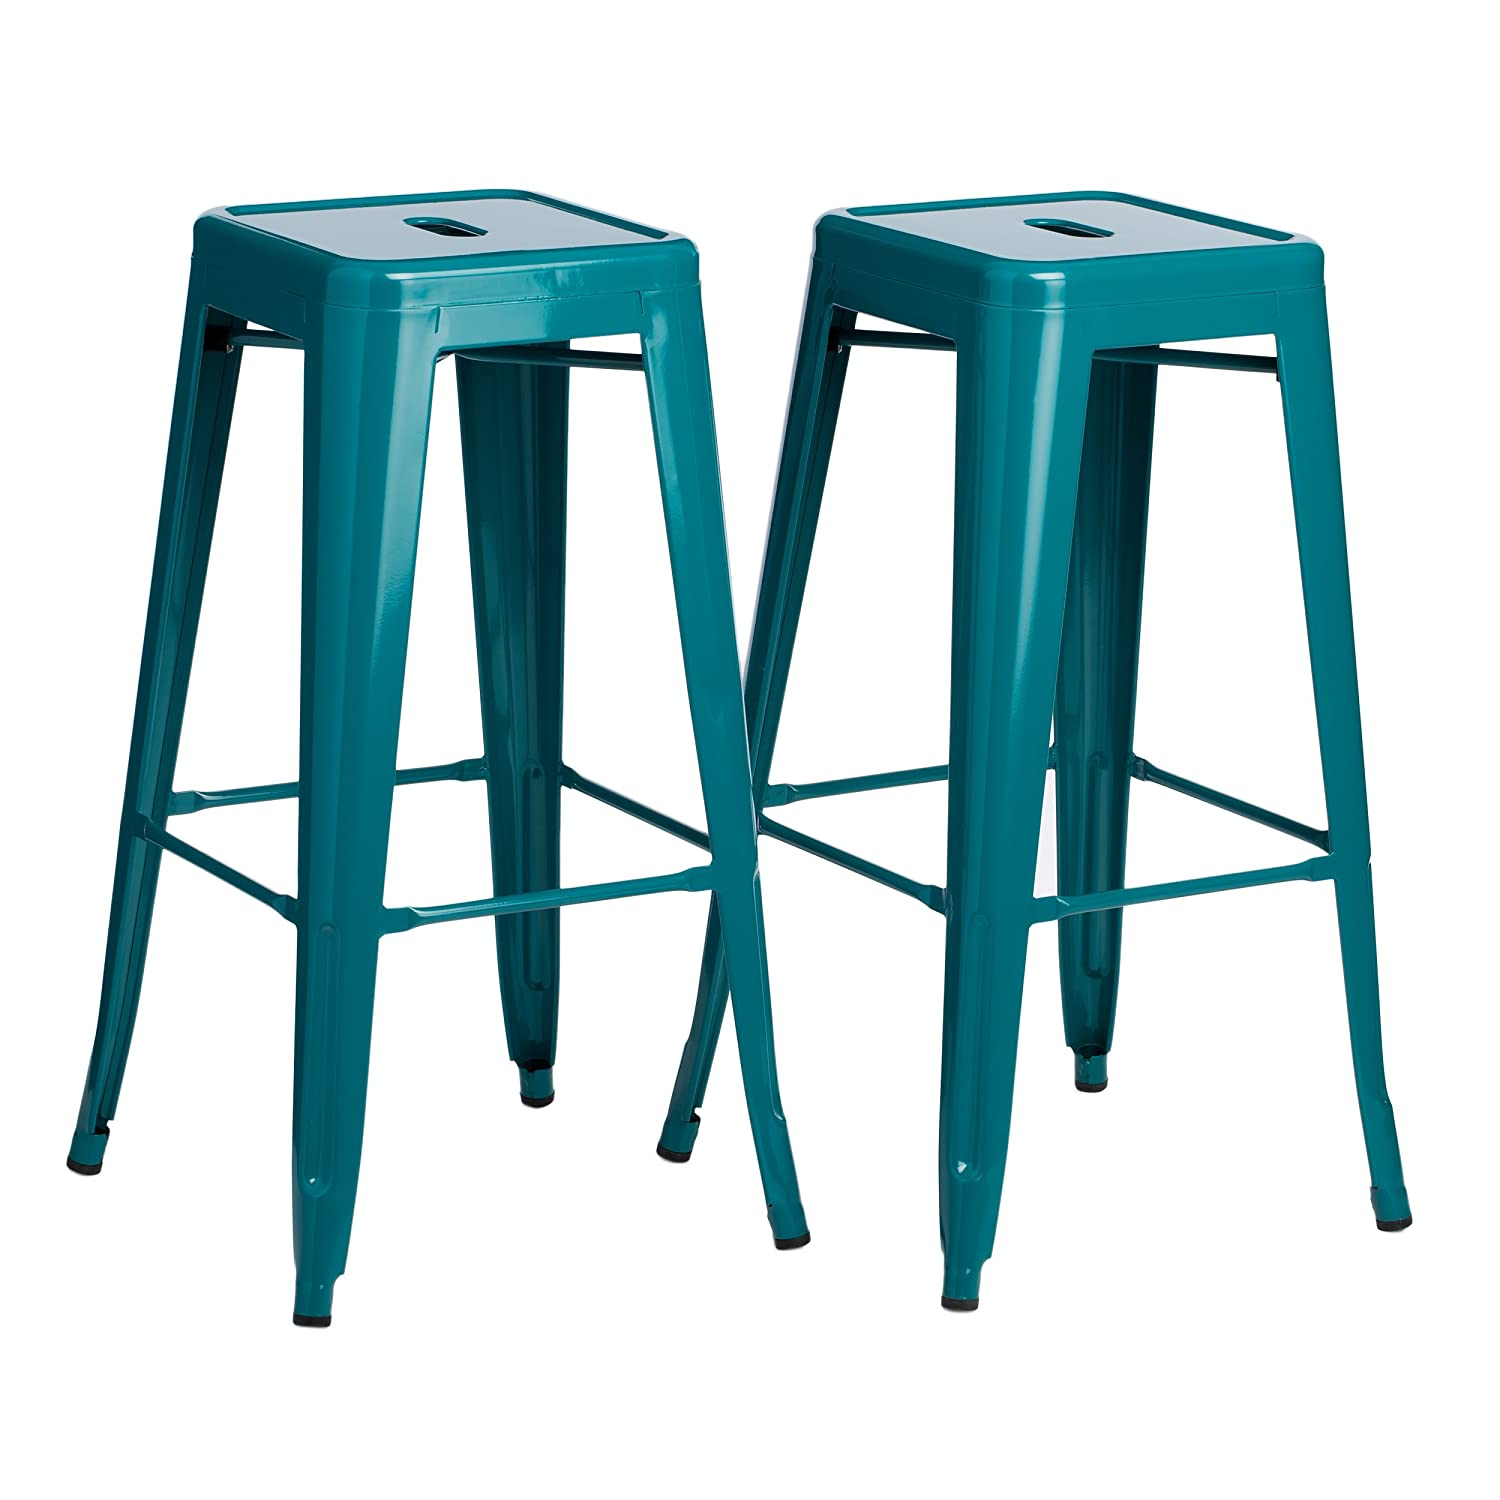 Amazon.com: ModHaus Set Of 2 Turquoise French Bistro Tolix Style Metal Bar  Stools In Glossy Powder Coated Finish Includes ModHaus Living (TM) Pen:  Kitchen U0026 ...